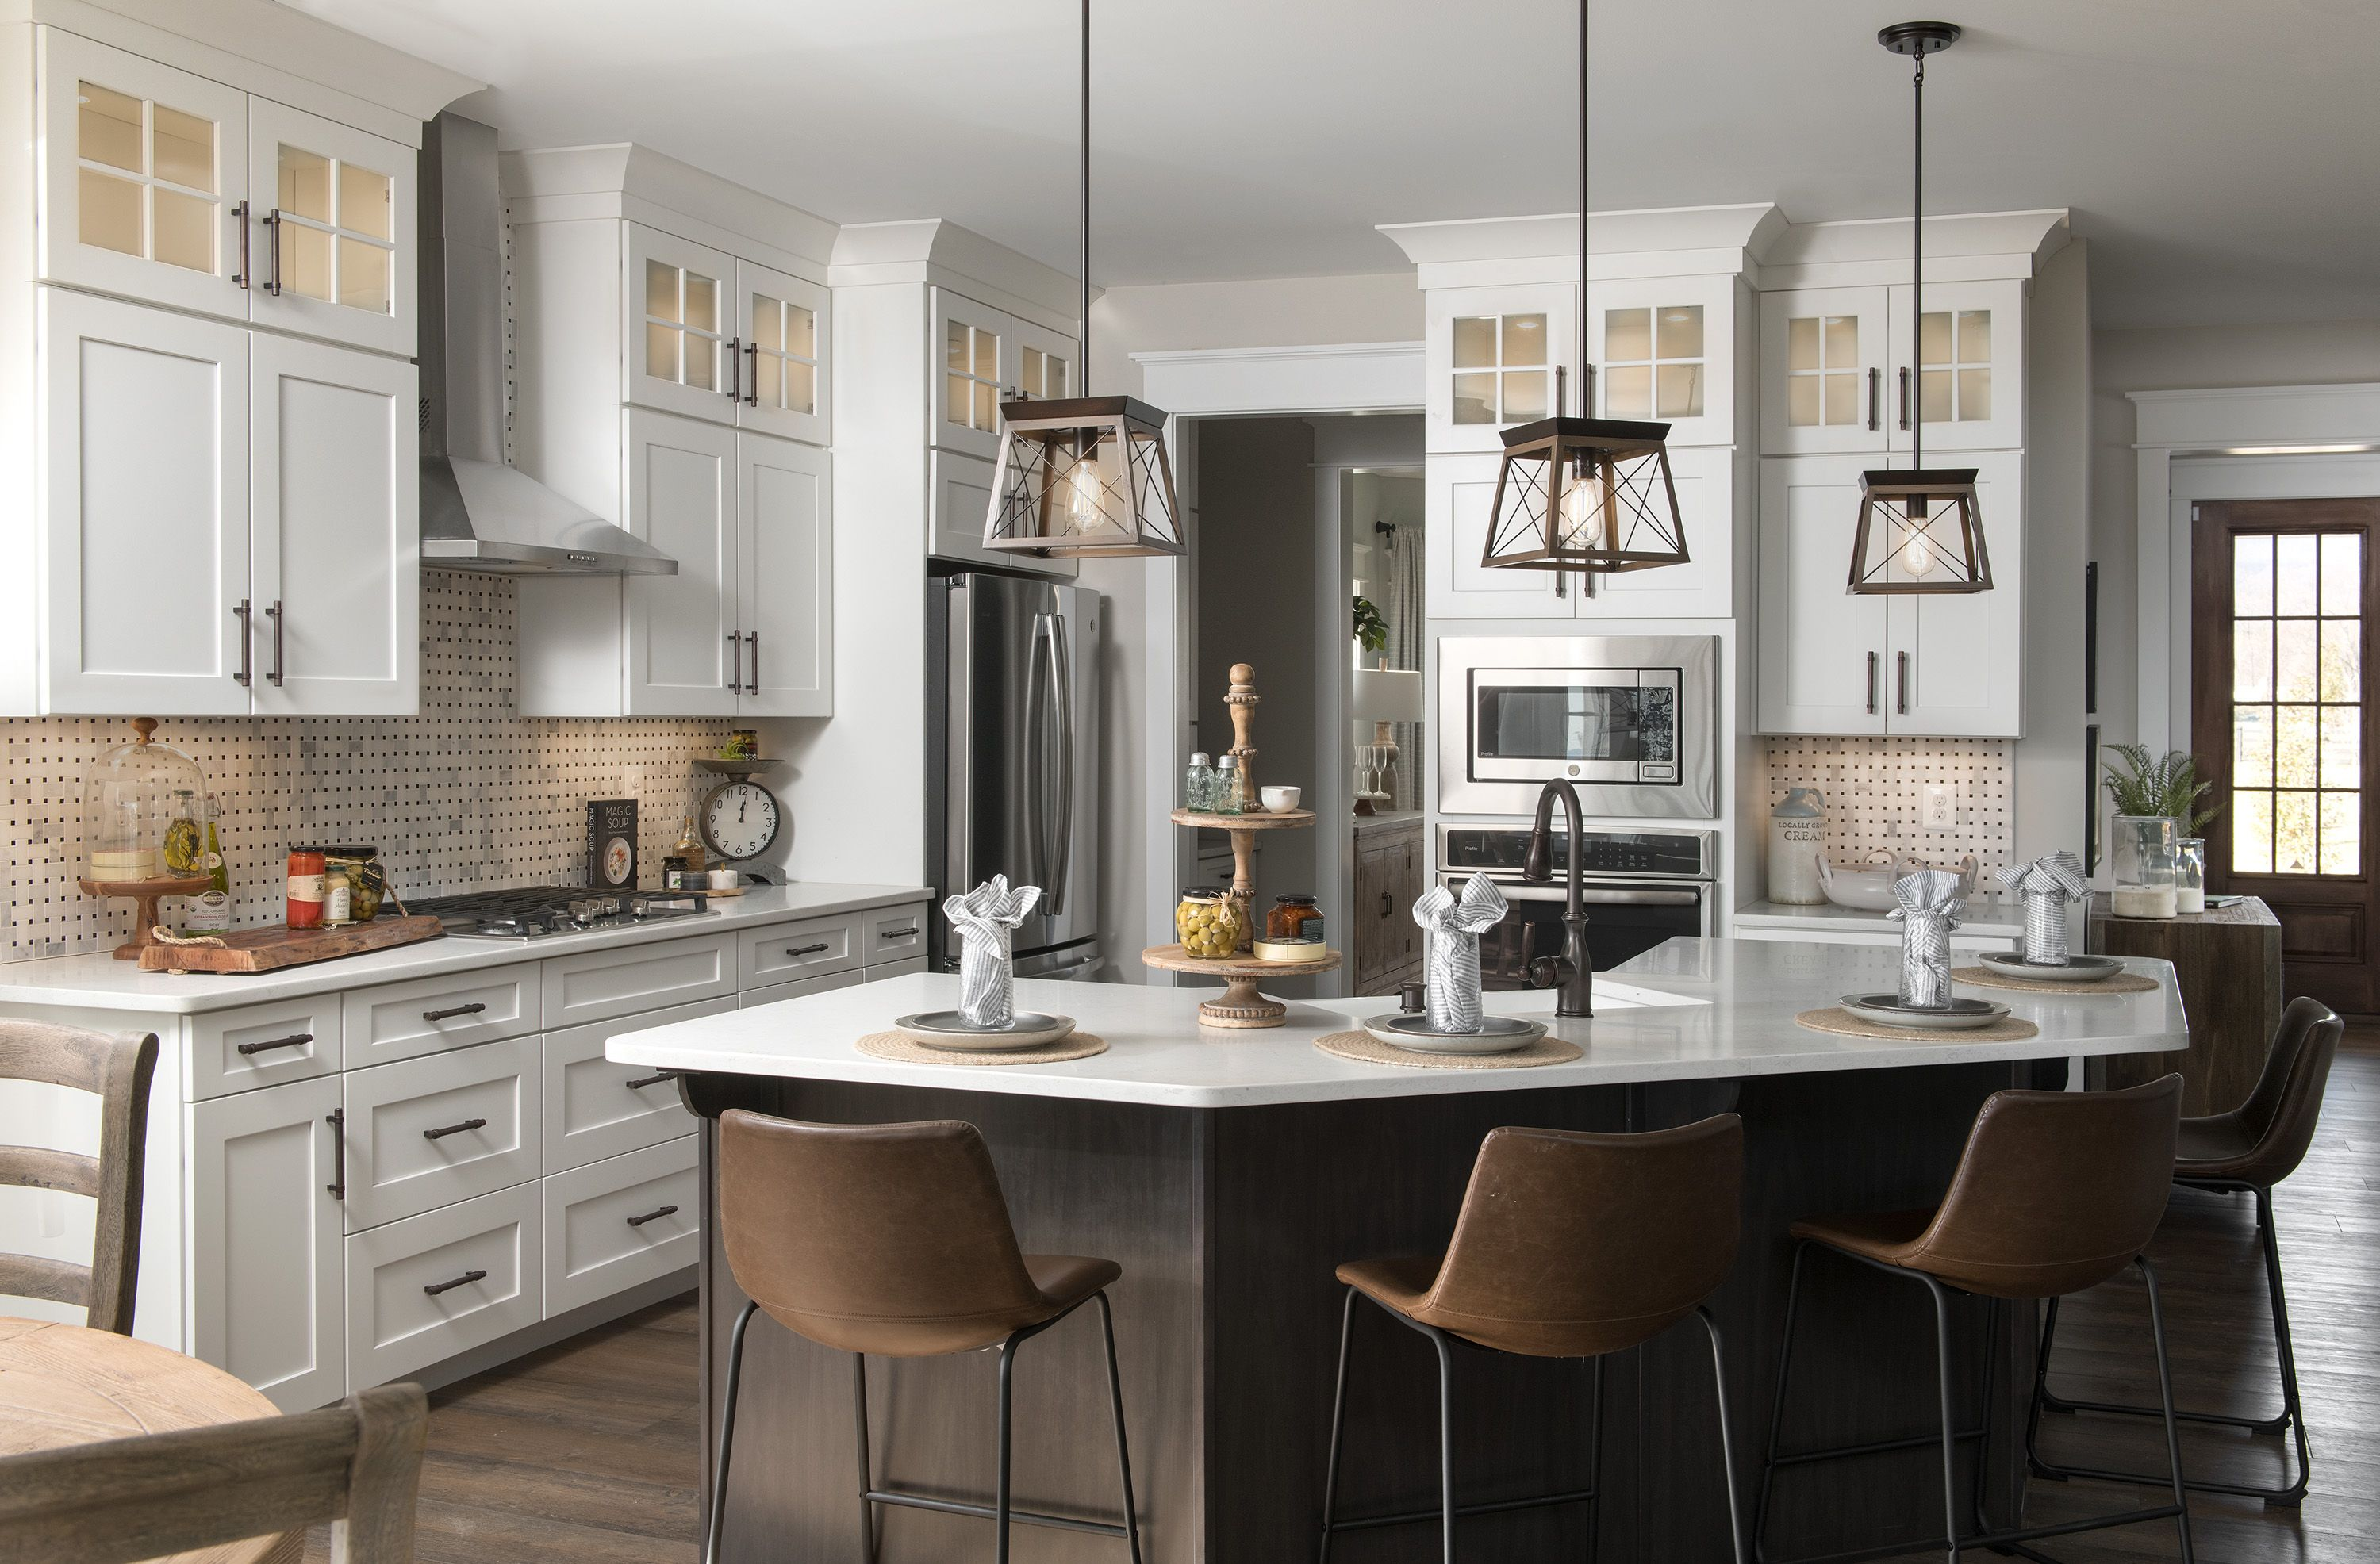 Kitchen featured in the Nottingham Farmhouse By Keystone Custom Homes in Baltimore, MD